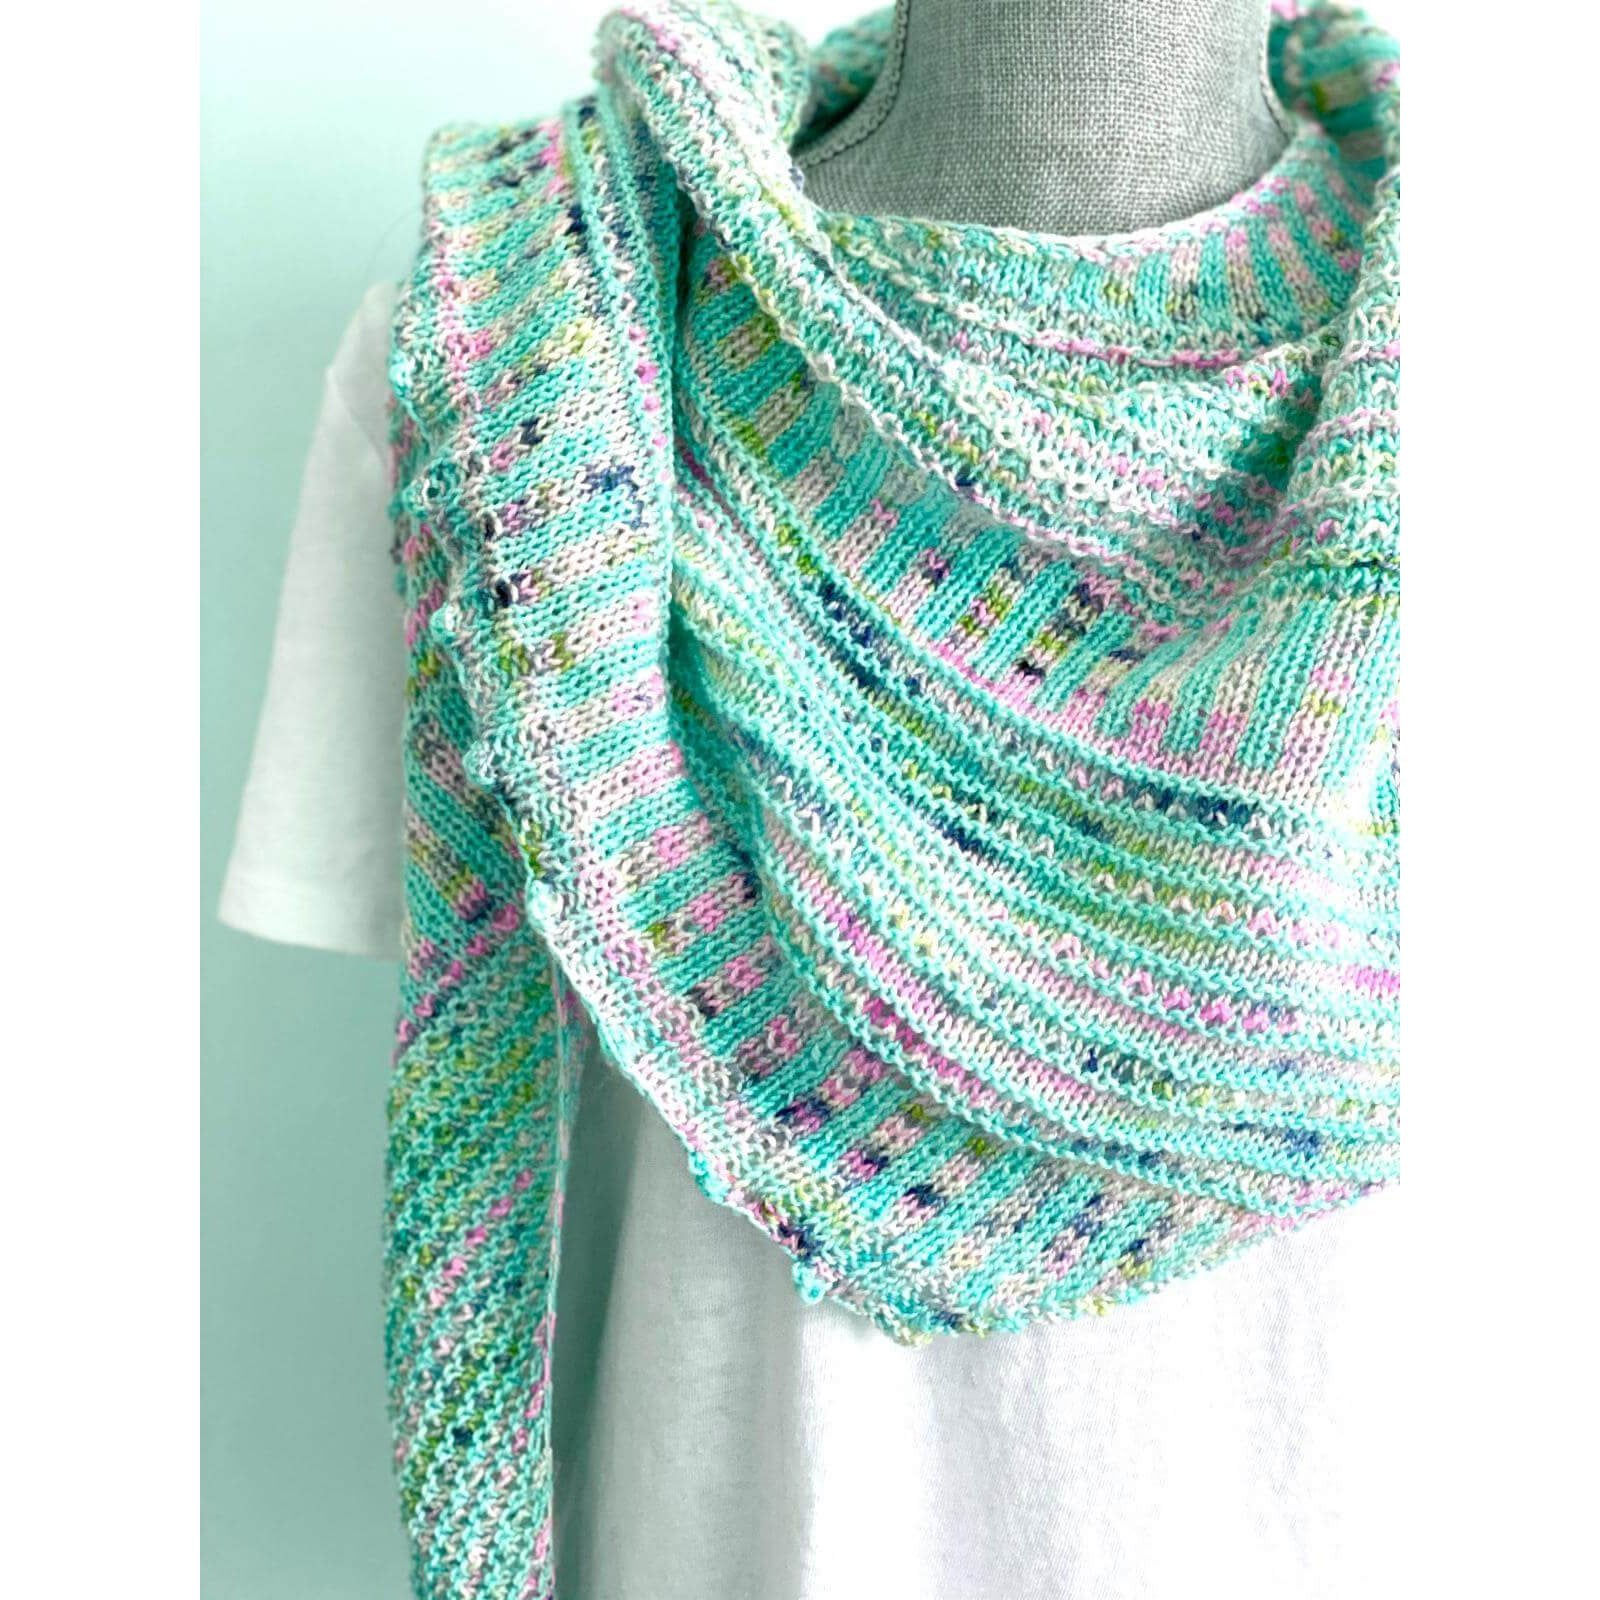 Breathe & Hope Kit - Casapinka - Emma's Yarn Super Silky with Pattern